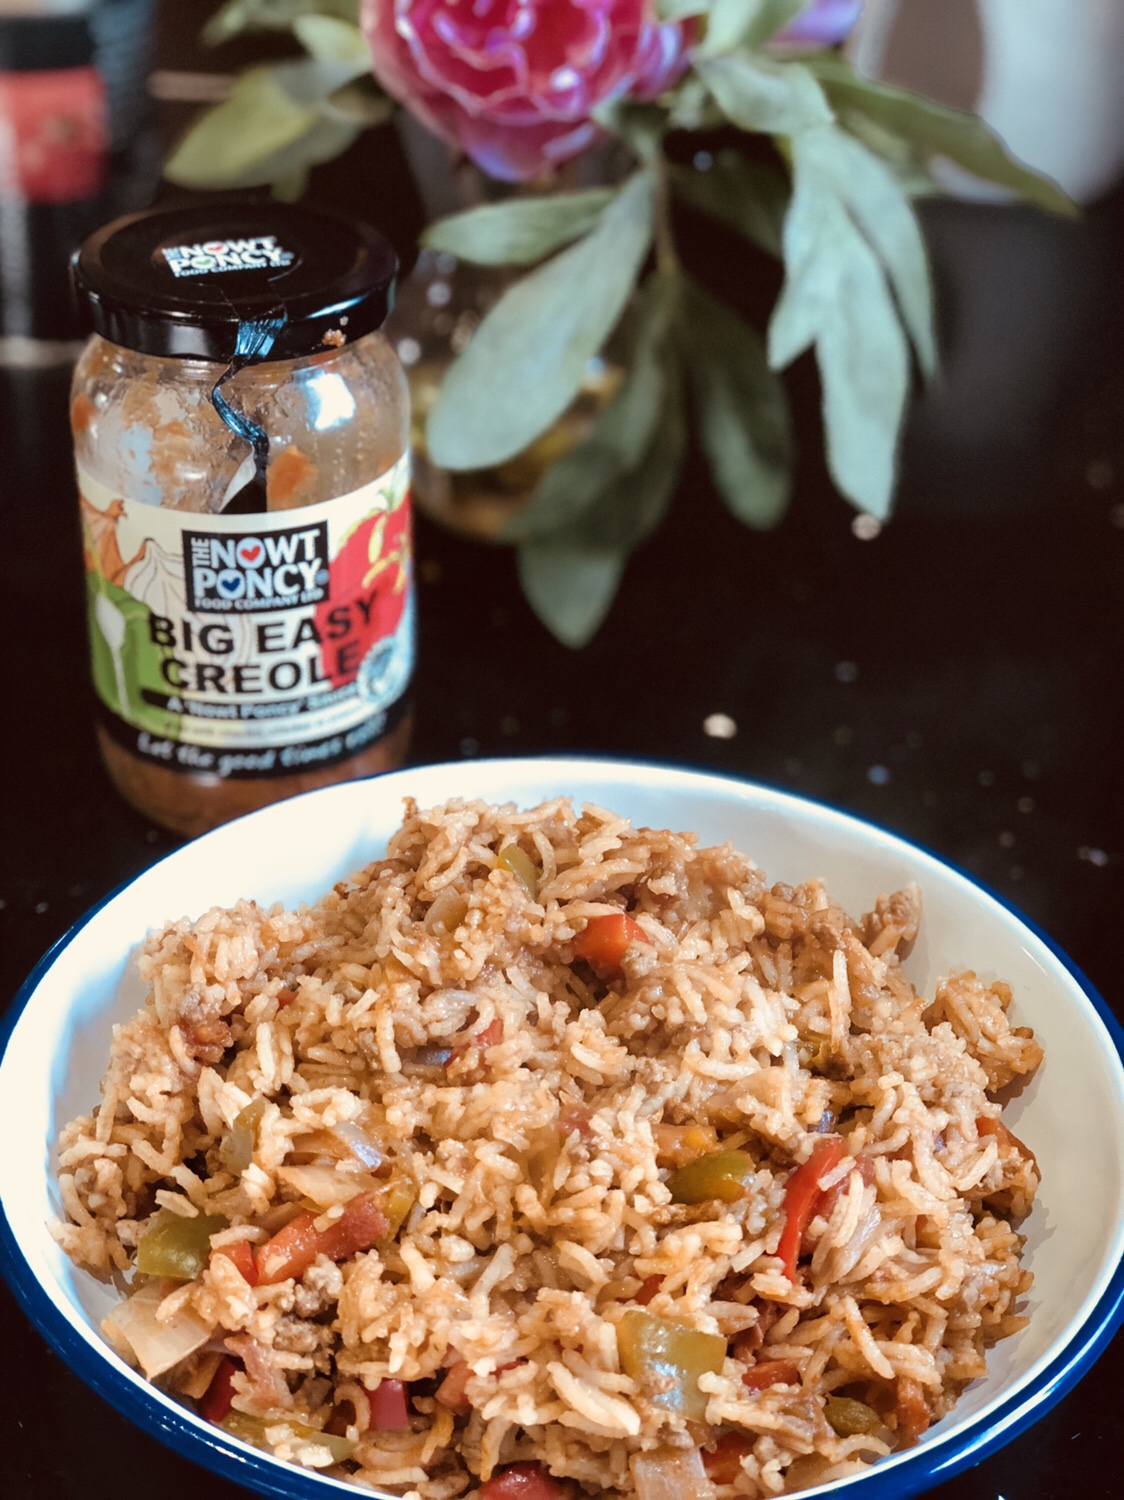 Nowt_poncy_creole_style_dirty_rice